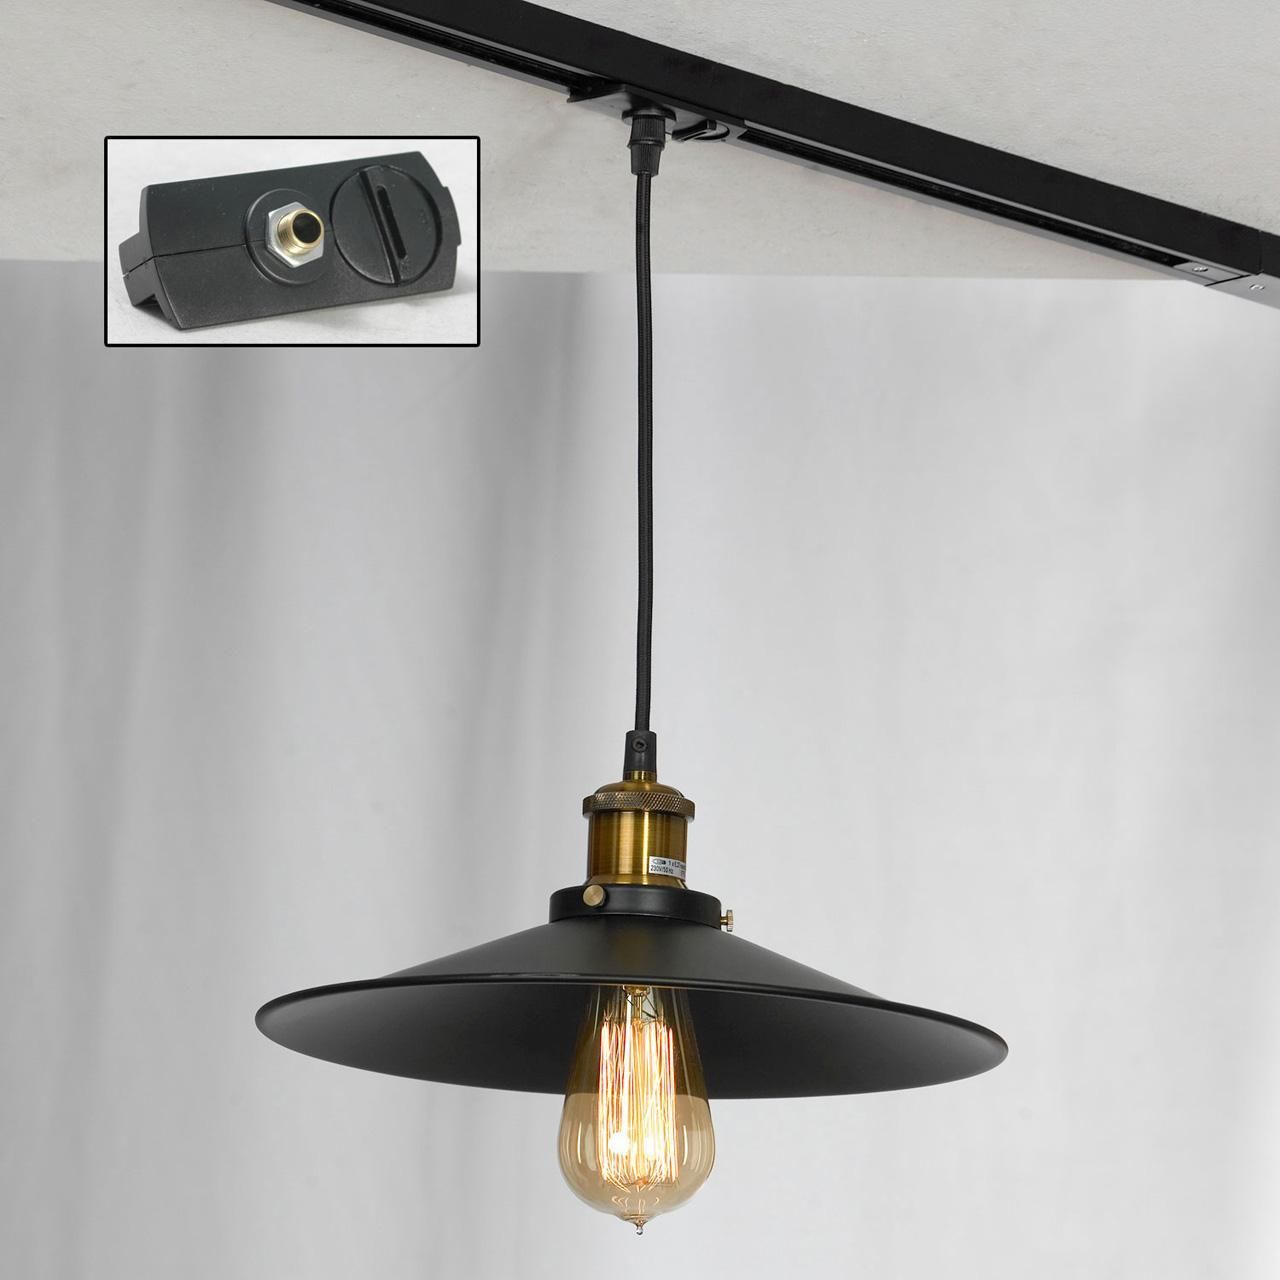 Трековый светильник однофазный Lussole LOFT Track Lights LSP-9601-TAB edison bulb loft style vintage pendant industrial light lamp with 3 lights for dining room